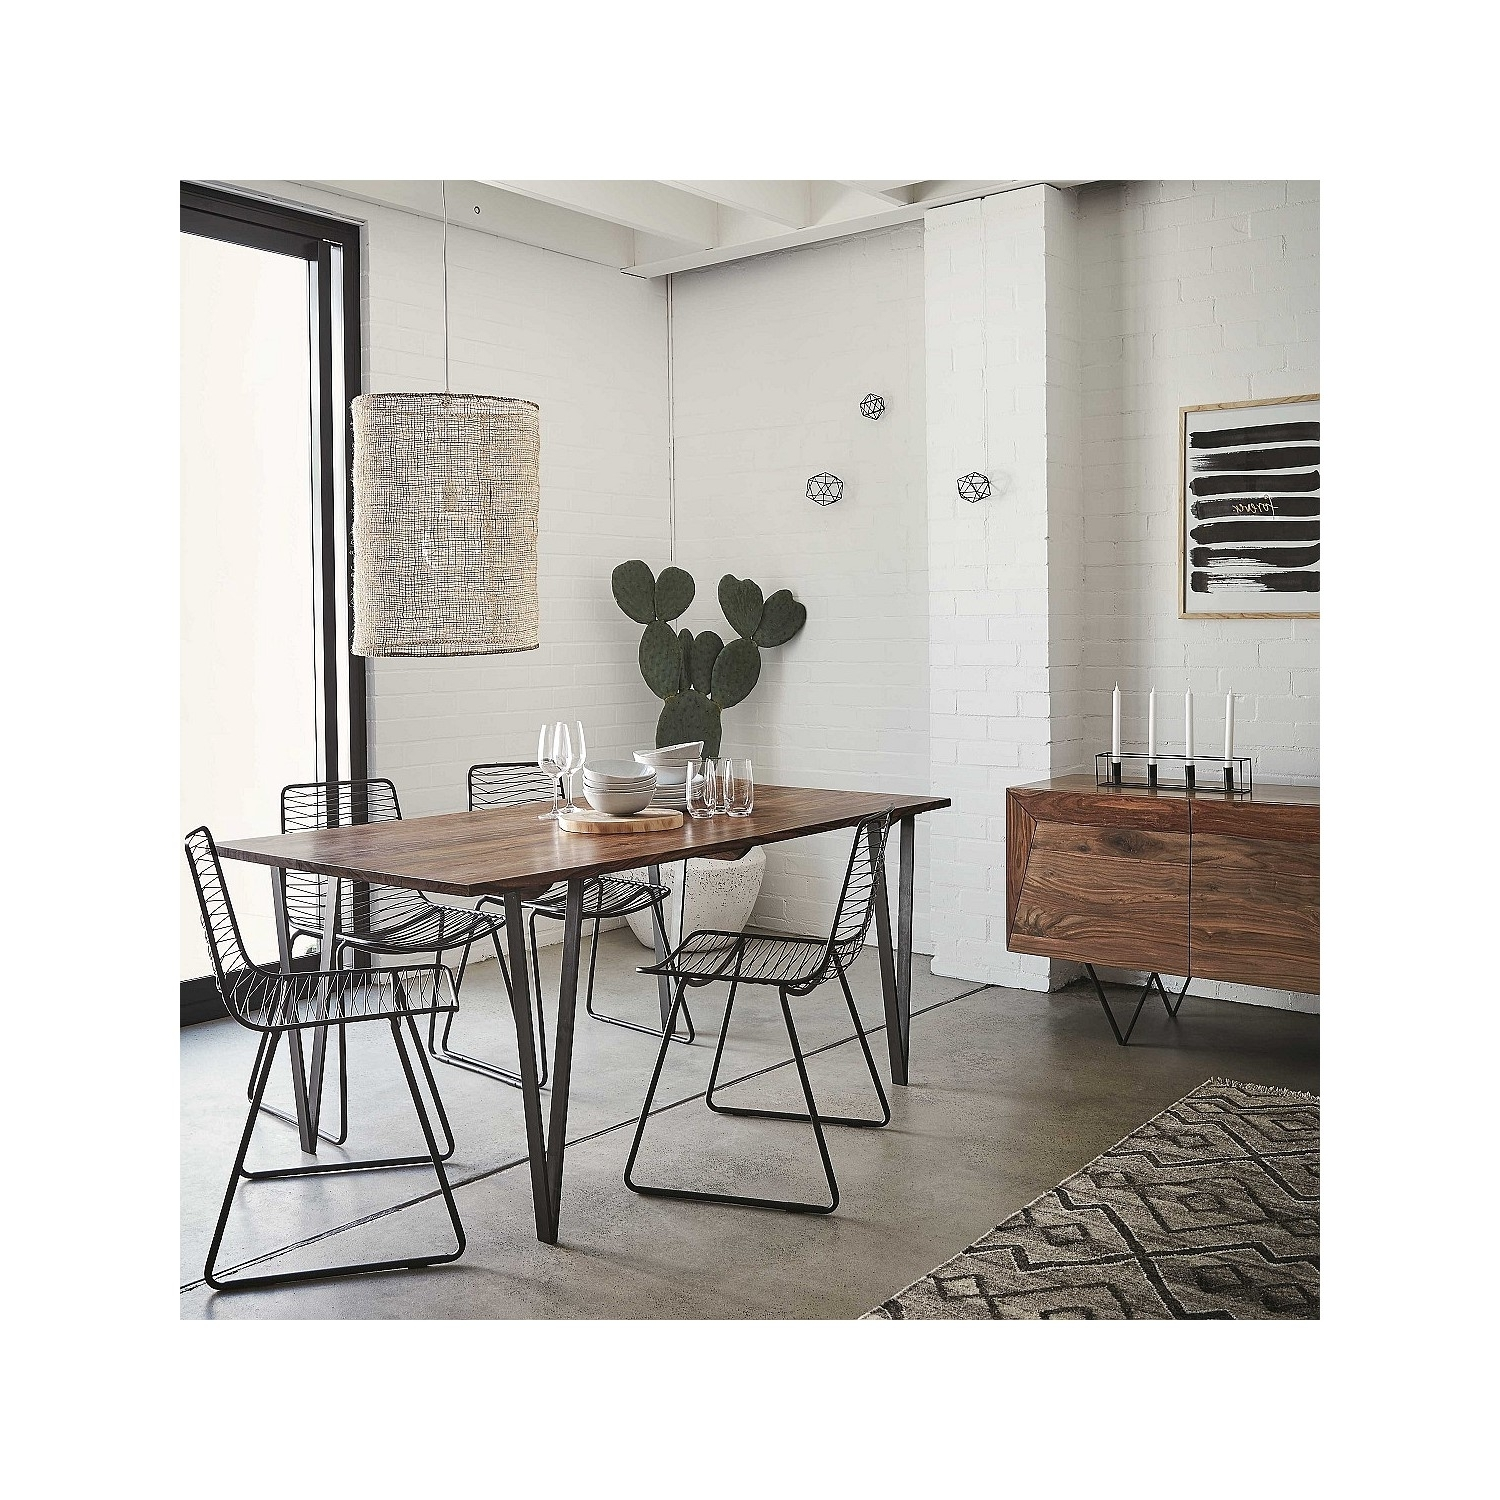 Favorite Dining Tables – Wyatt Dining Table 175X90Cm For Wyatt Dining Tables (View 3 of 25)